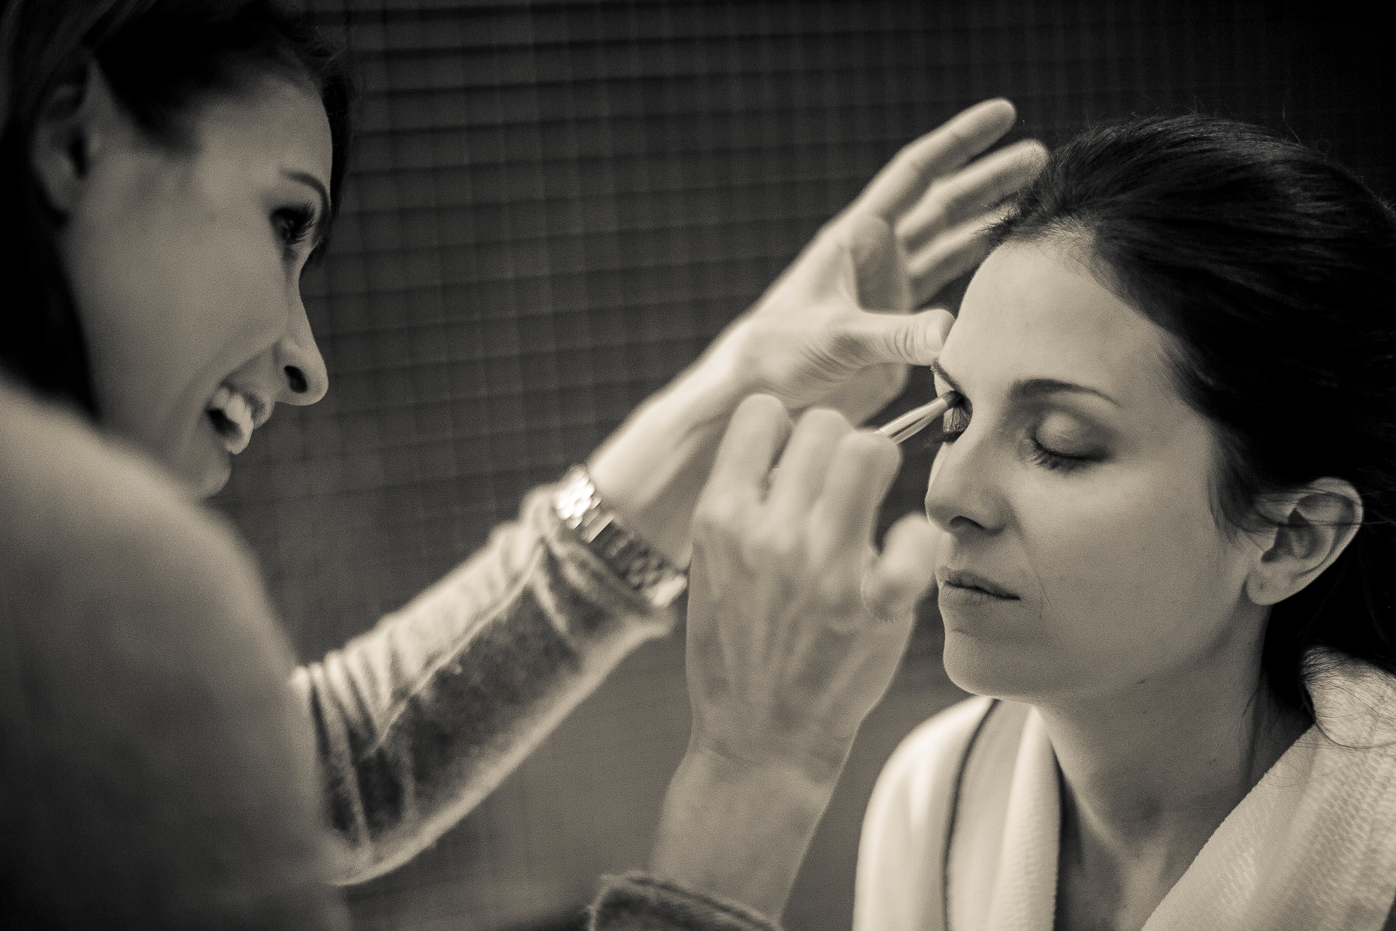 Bride getting her make-up done at Chicago's W hotel City Center